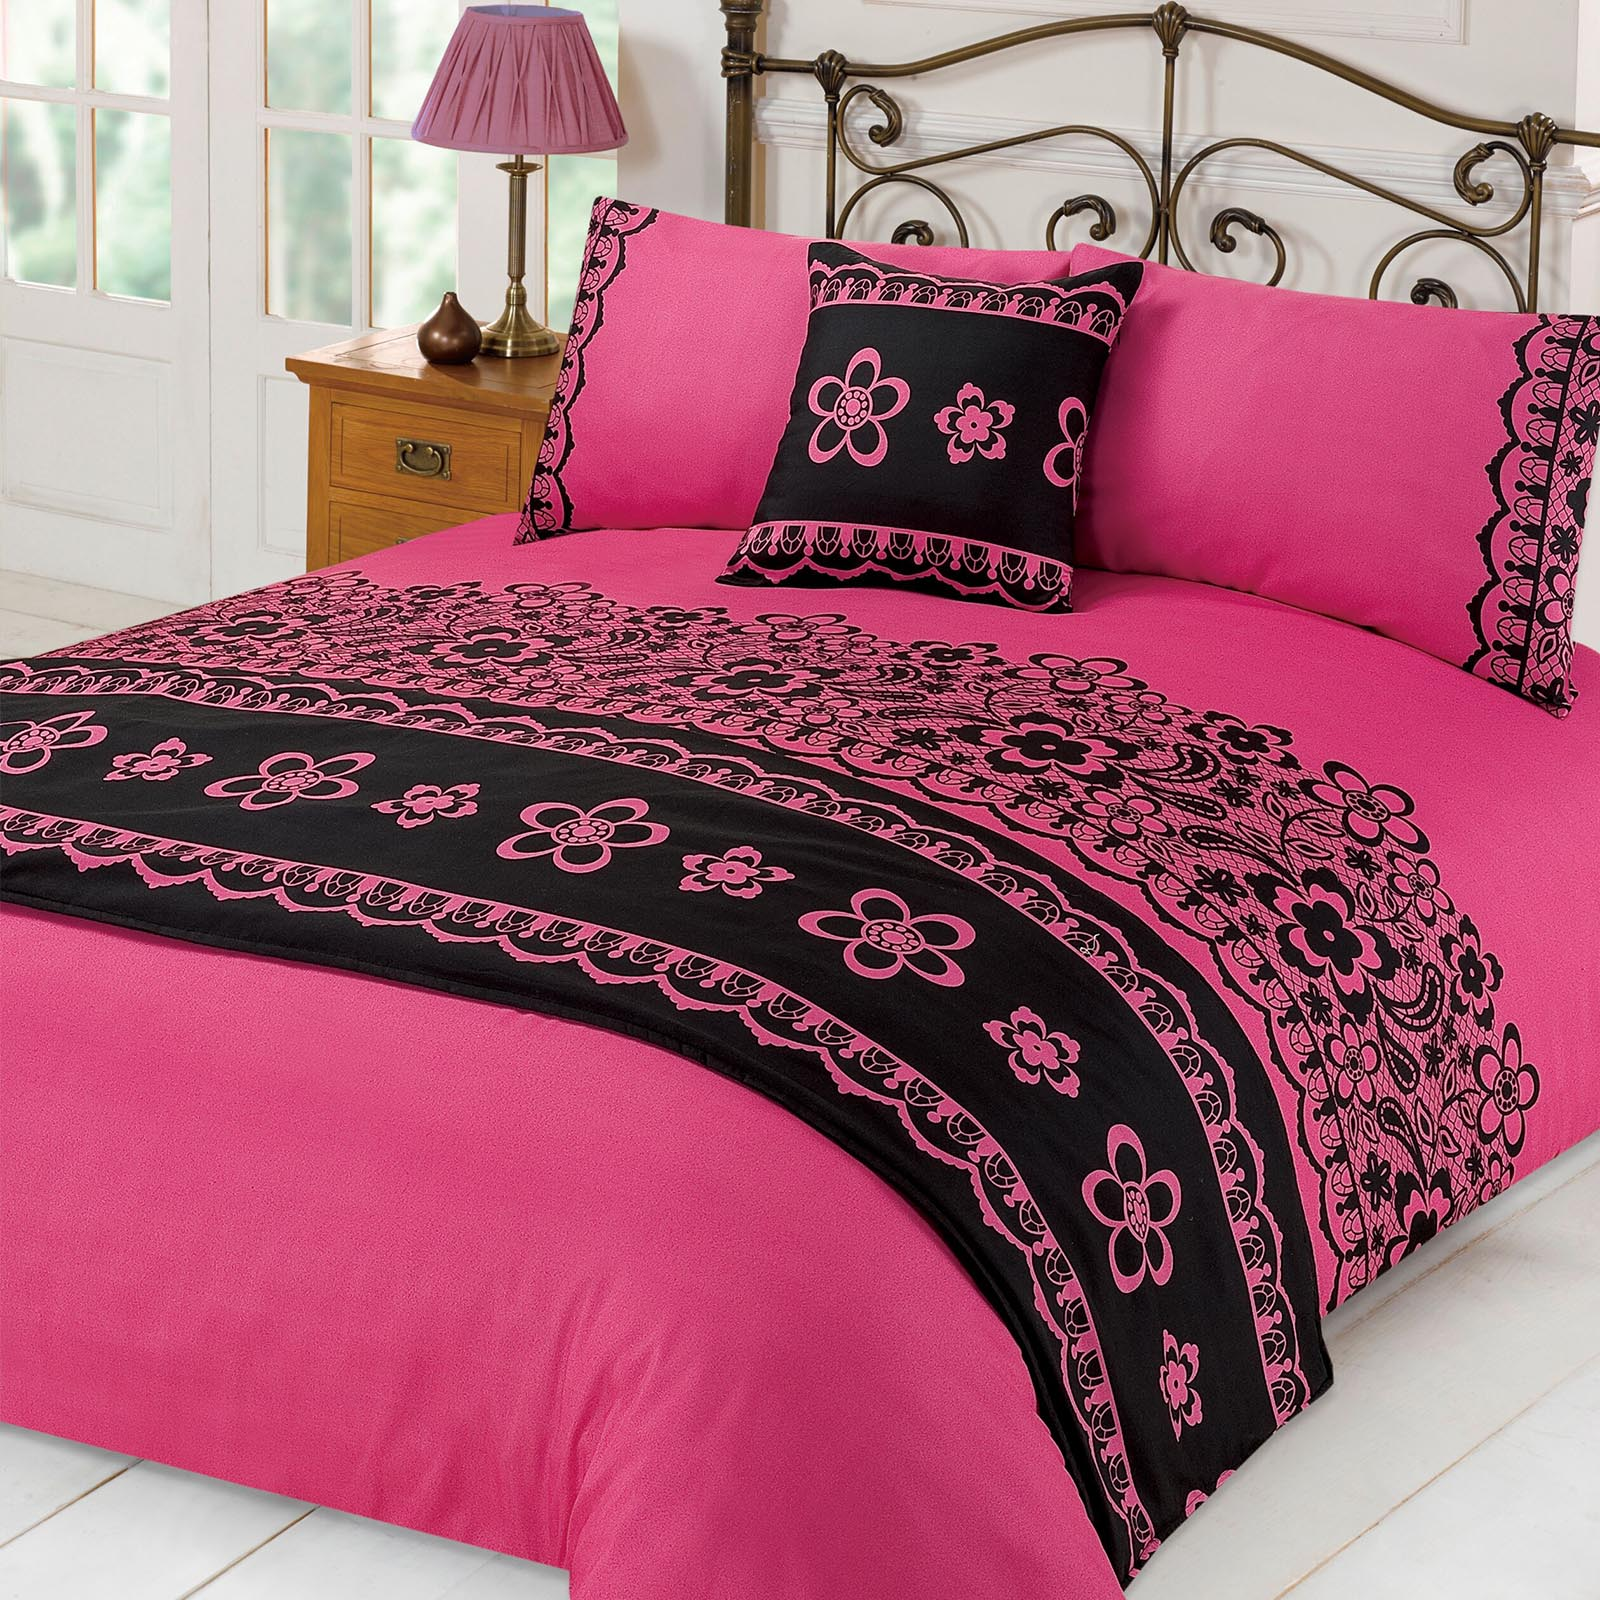 Lace Duvet Cover With Pillowcases Runner Bed In A Bag Set